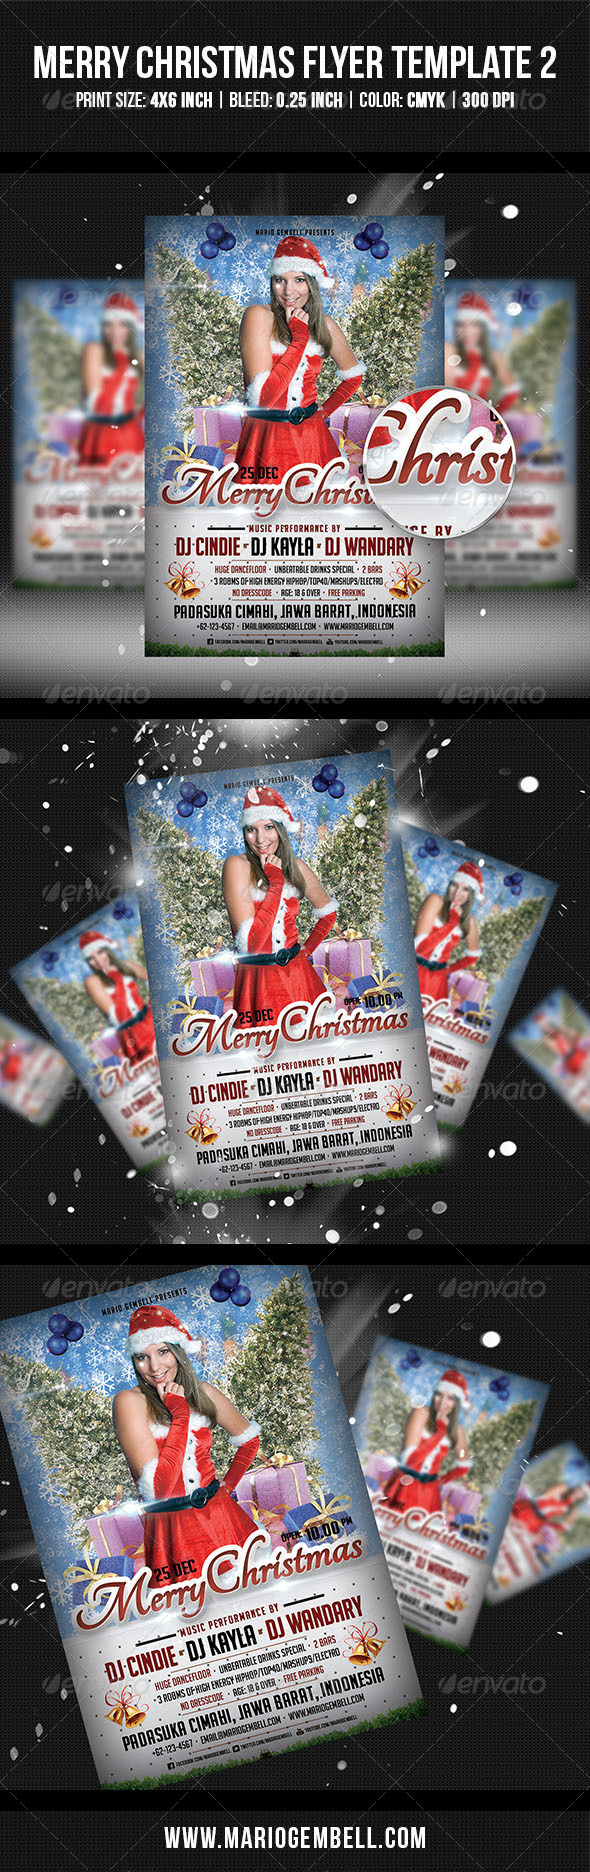 GraphicRiver Merry Christmas Flyer Template 2 3400895